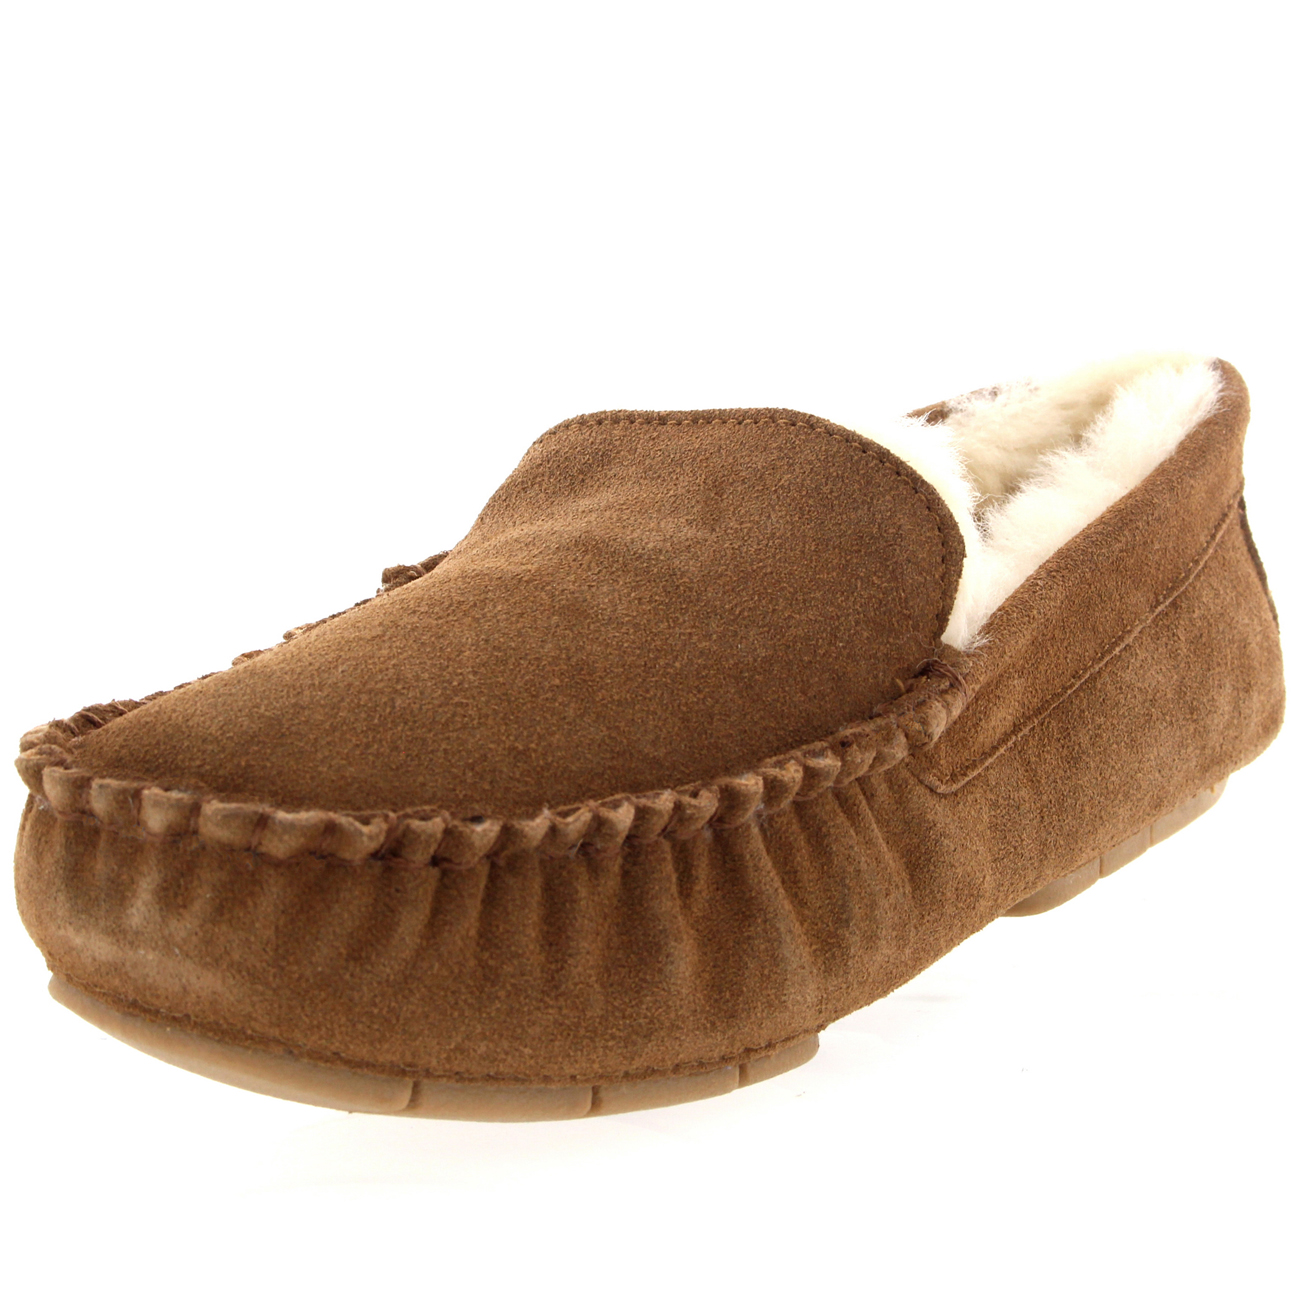 Mens Real Suede Australian Fur Sheepskin Moccasins Fur Lined Slipper Shoes 6-14 | eBay